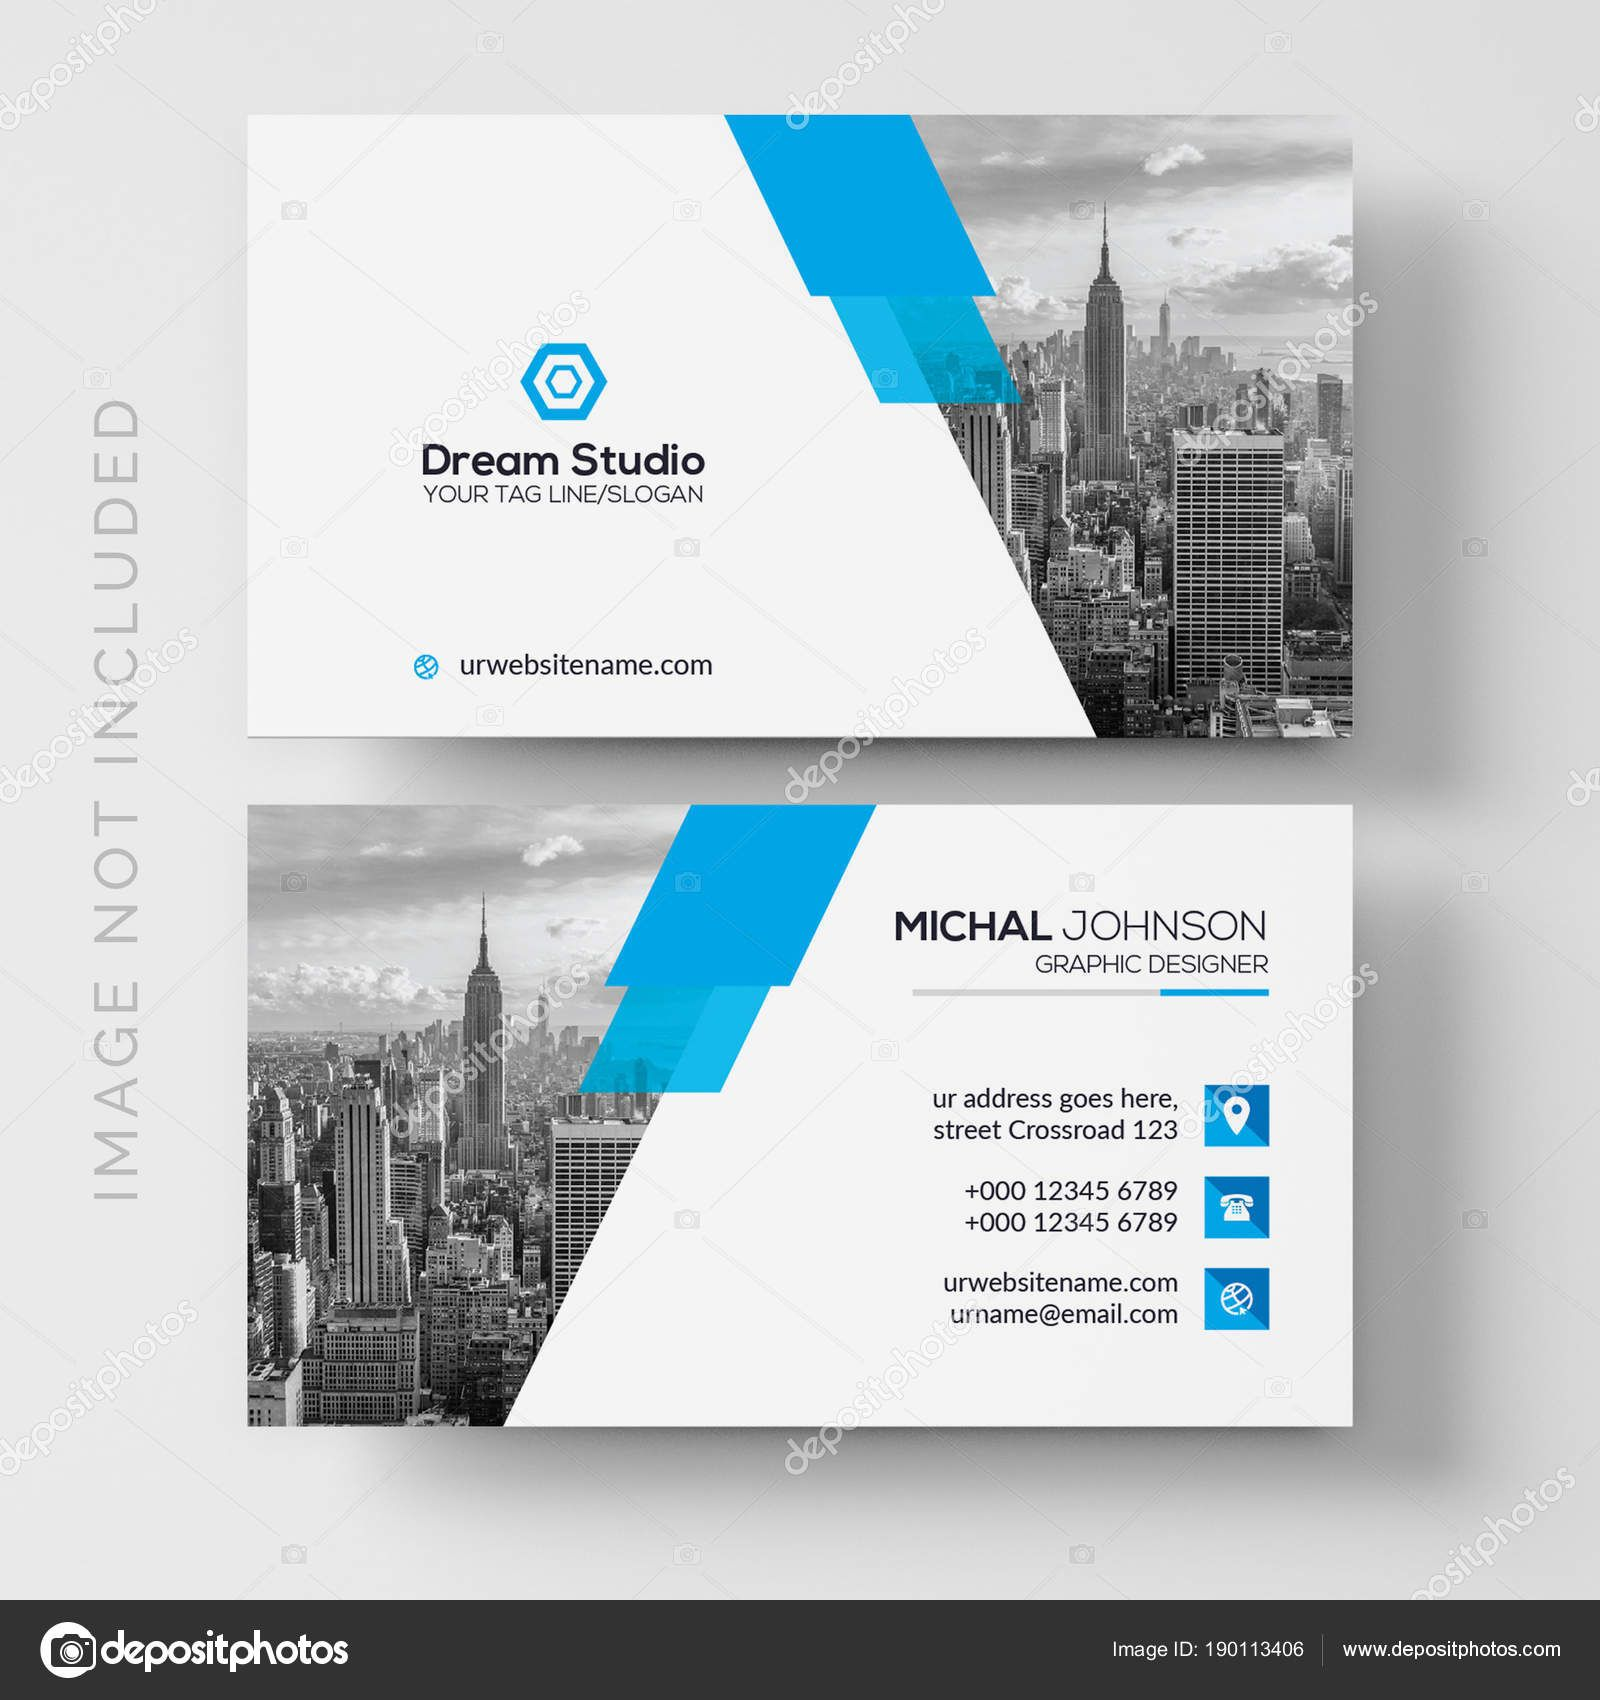 Download business card vector template stock illustration download business card vector template stock illustration reheart Gallery